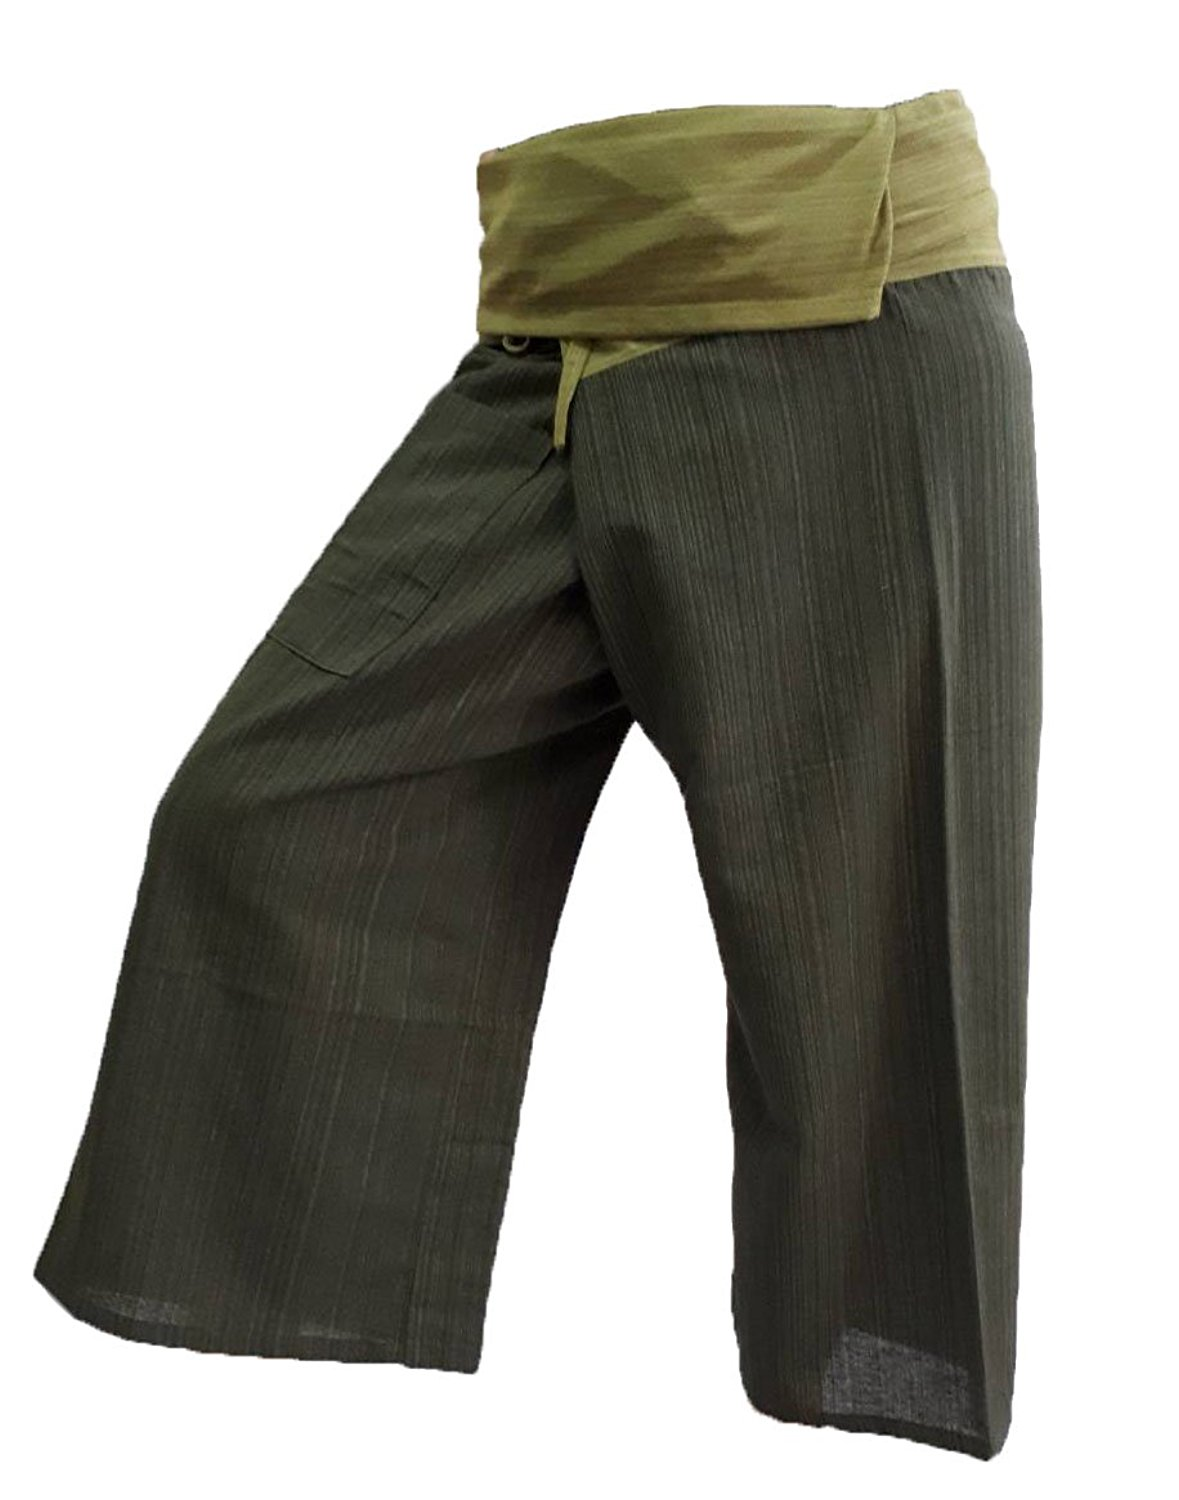 3a05fb9ab18 Get Quotations · BELLEZAS 2 Tone Thai Fisherman Pants Yoga Trousers Plus  Size Cotton Stripe (Green Dark